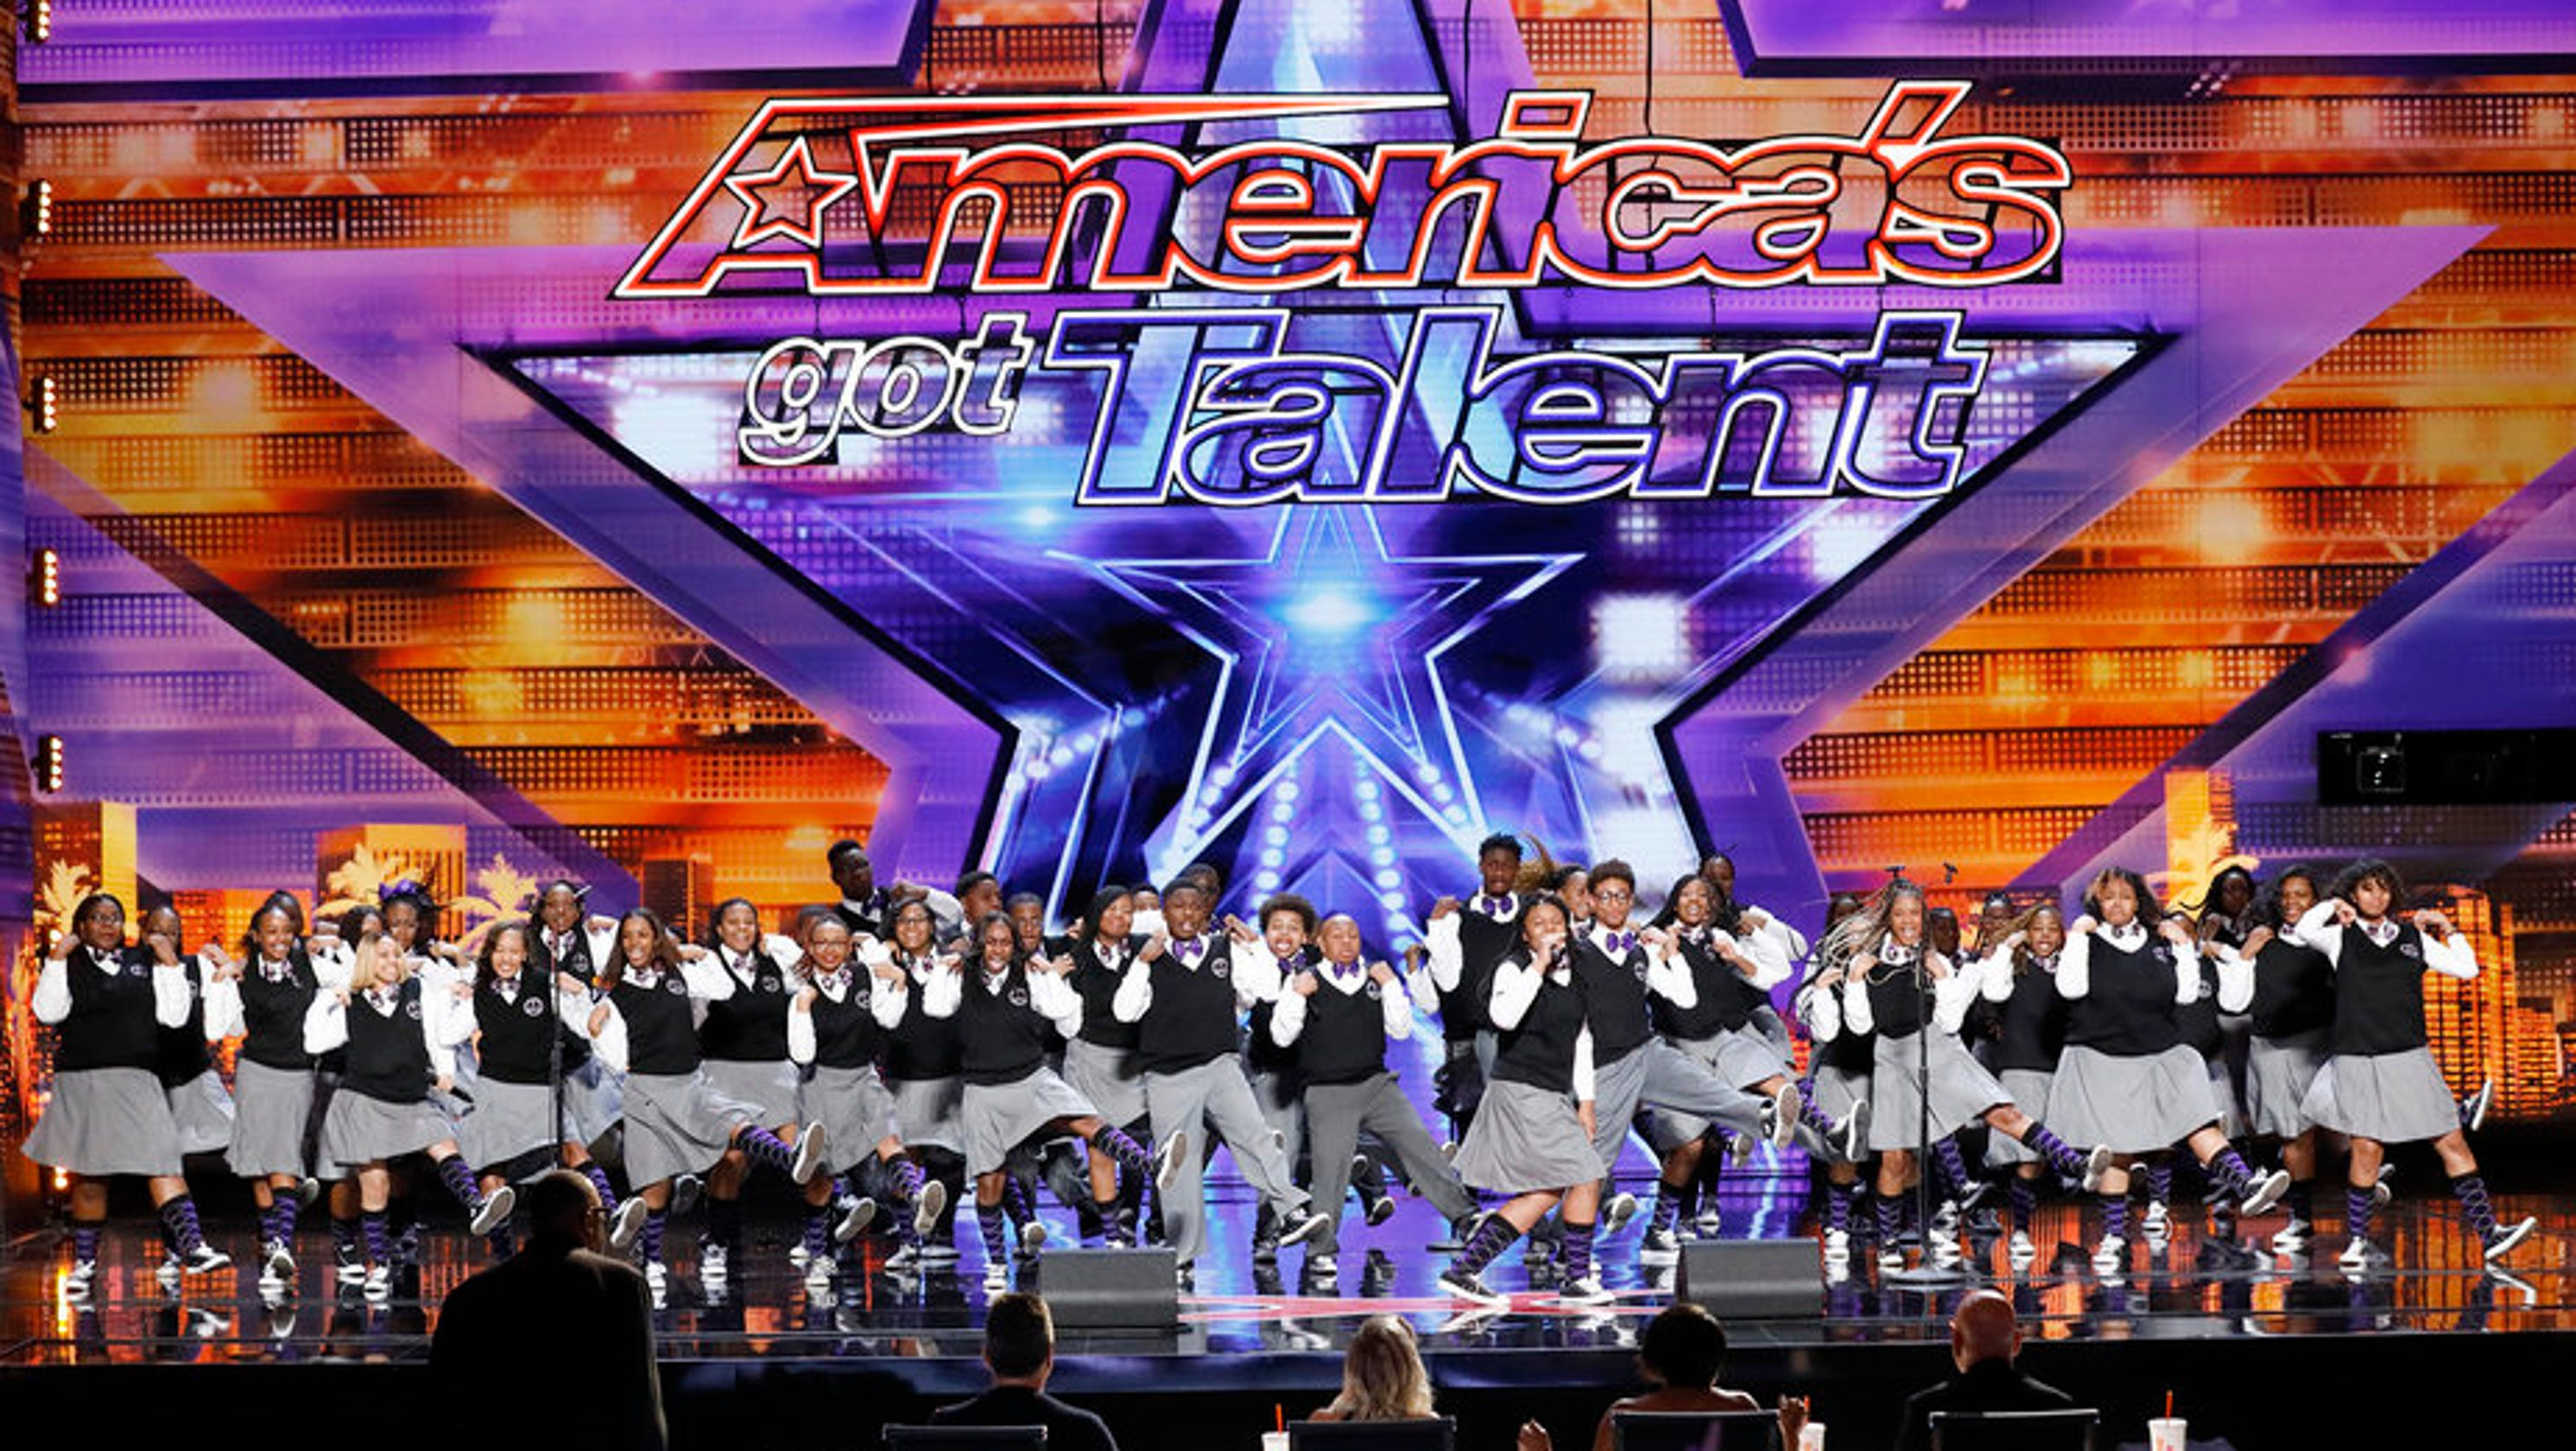 Detroit Youth Choir: Meet the choir that moved 'AGT'